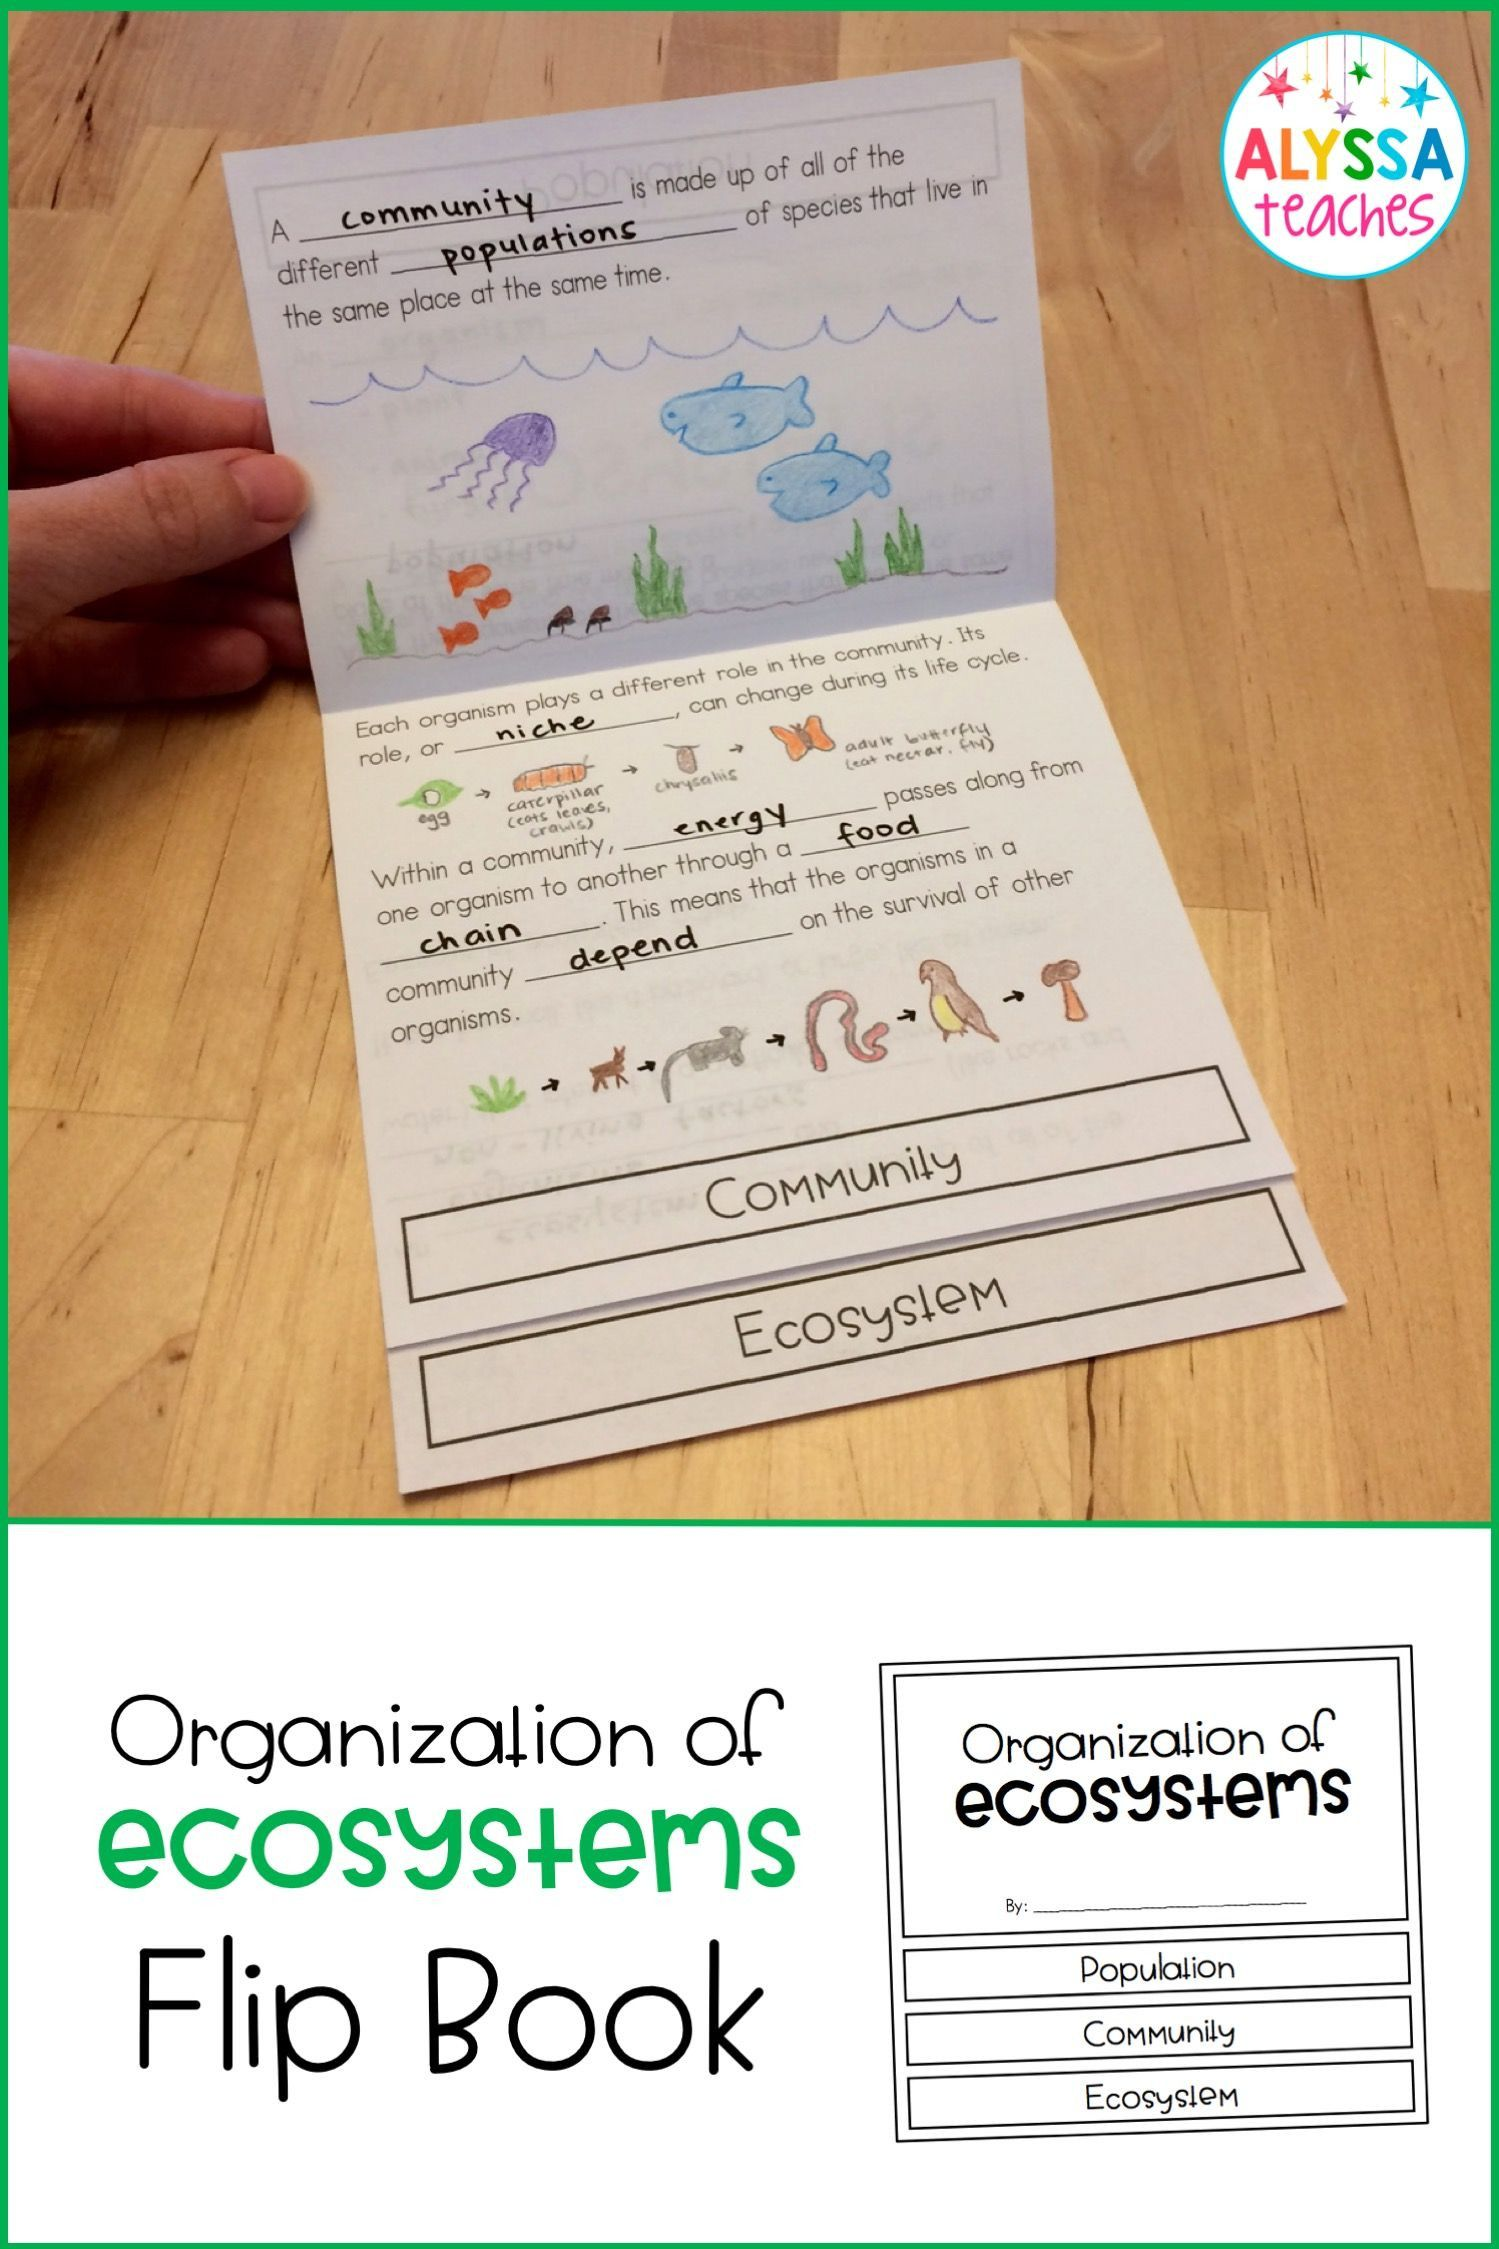 Ecosystem Worksheets 4th Grade Flip Book Interactive Science Notebook Ecosystems